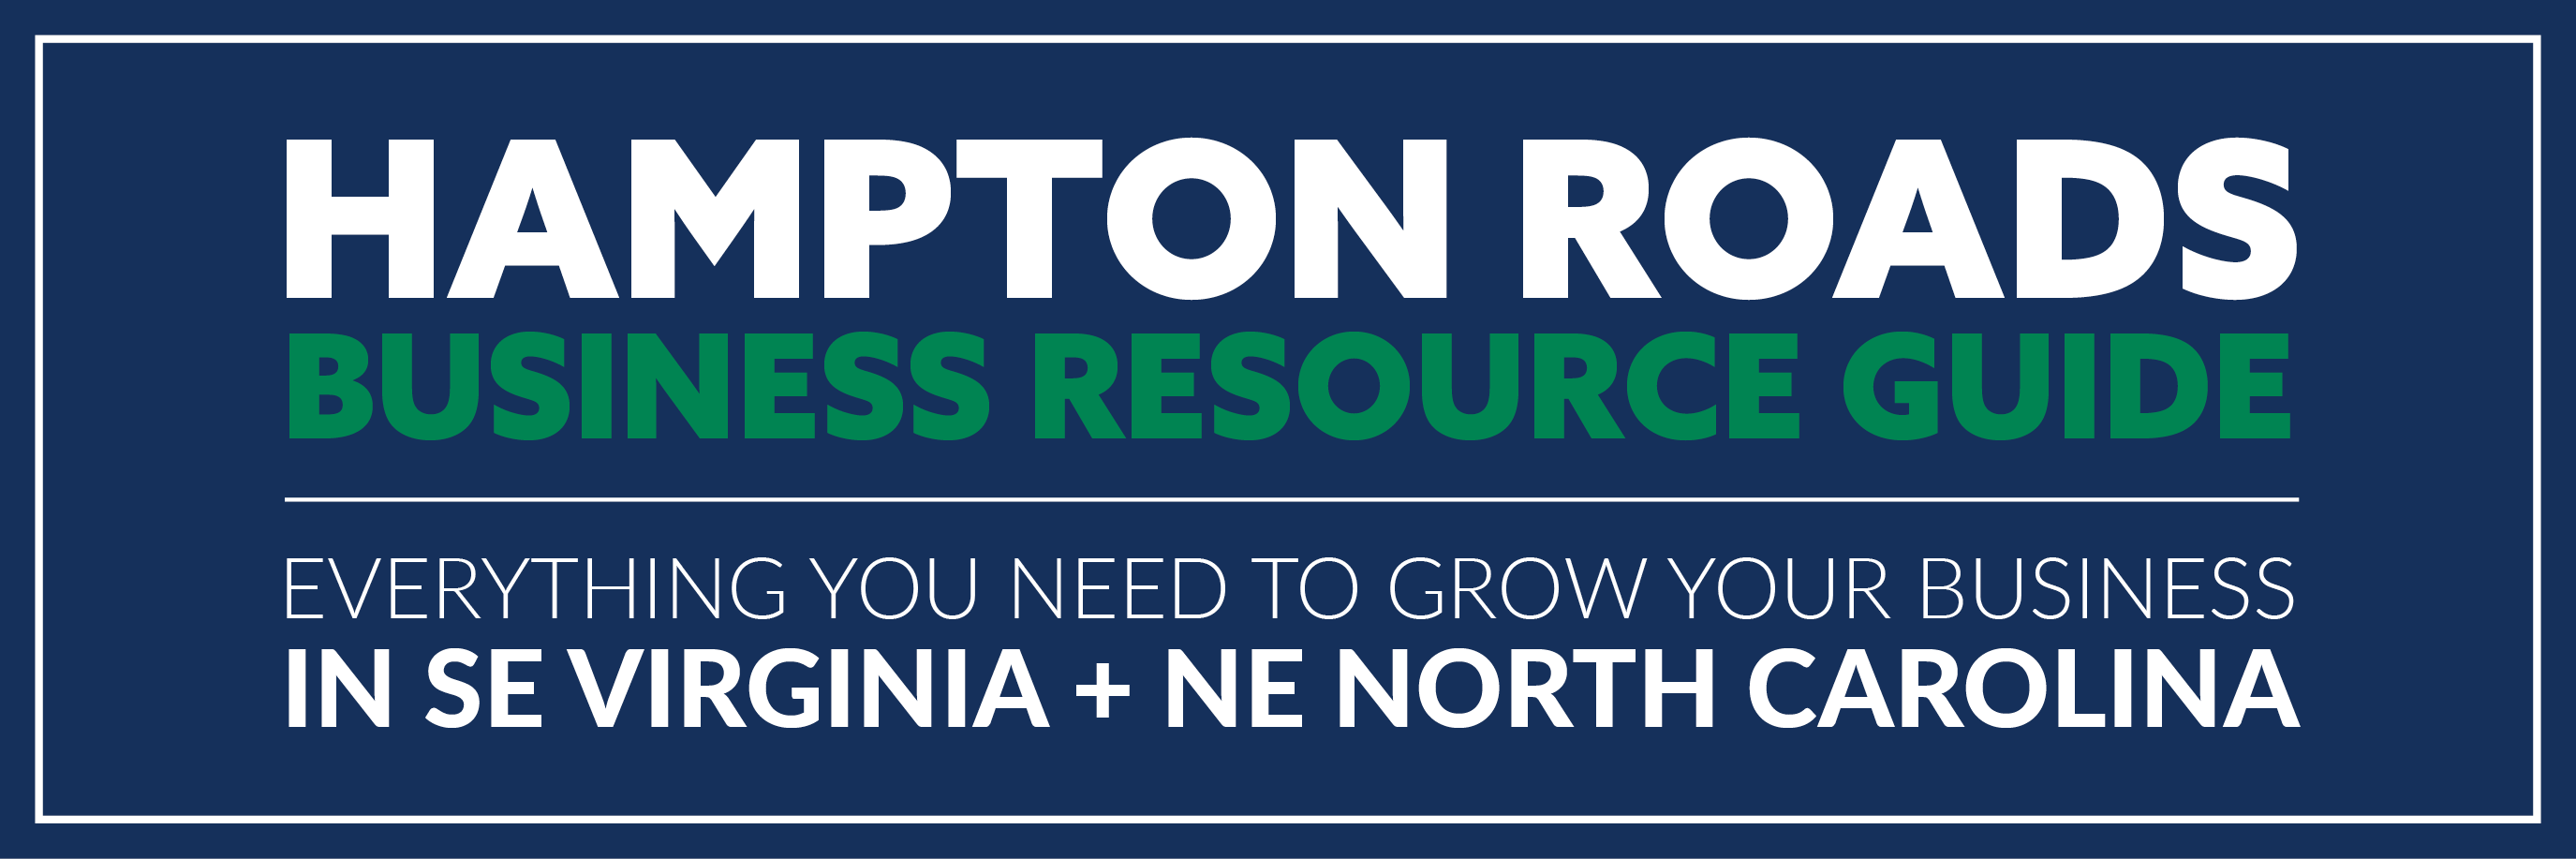 2020 Hampton Roads Business Resource Guide 006